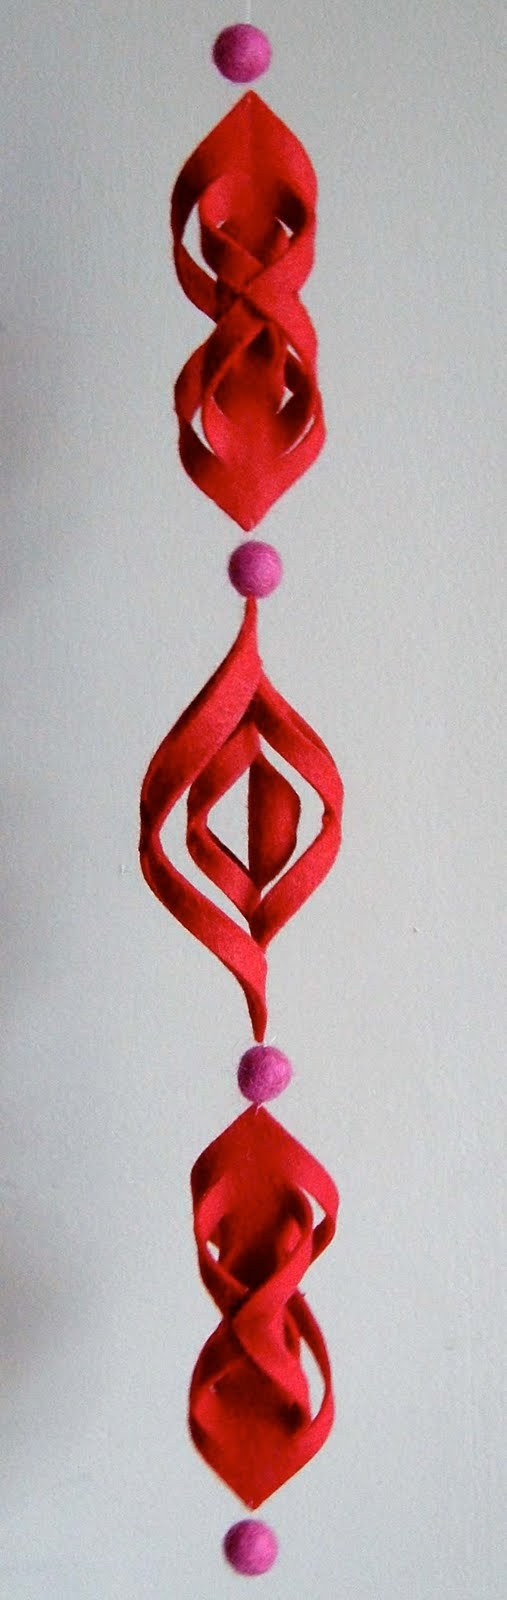 Homemade paper christmas decorations - Diy Paper And Felt Holiday Ornaments Modern Diy Ornament